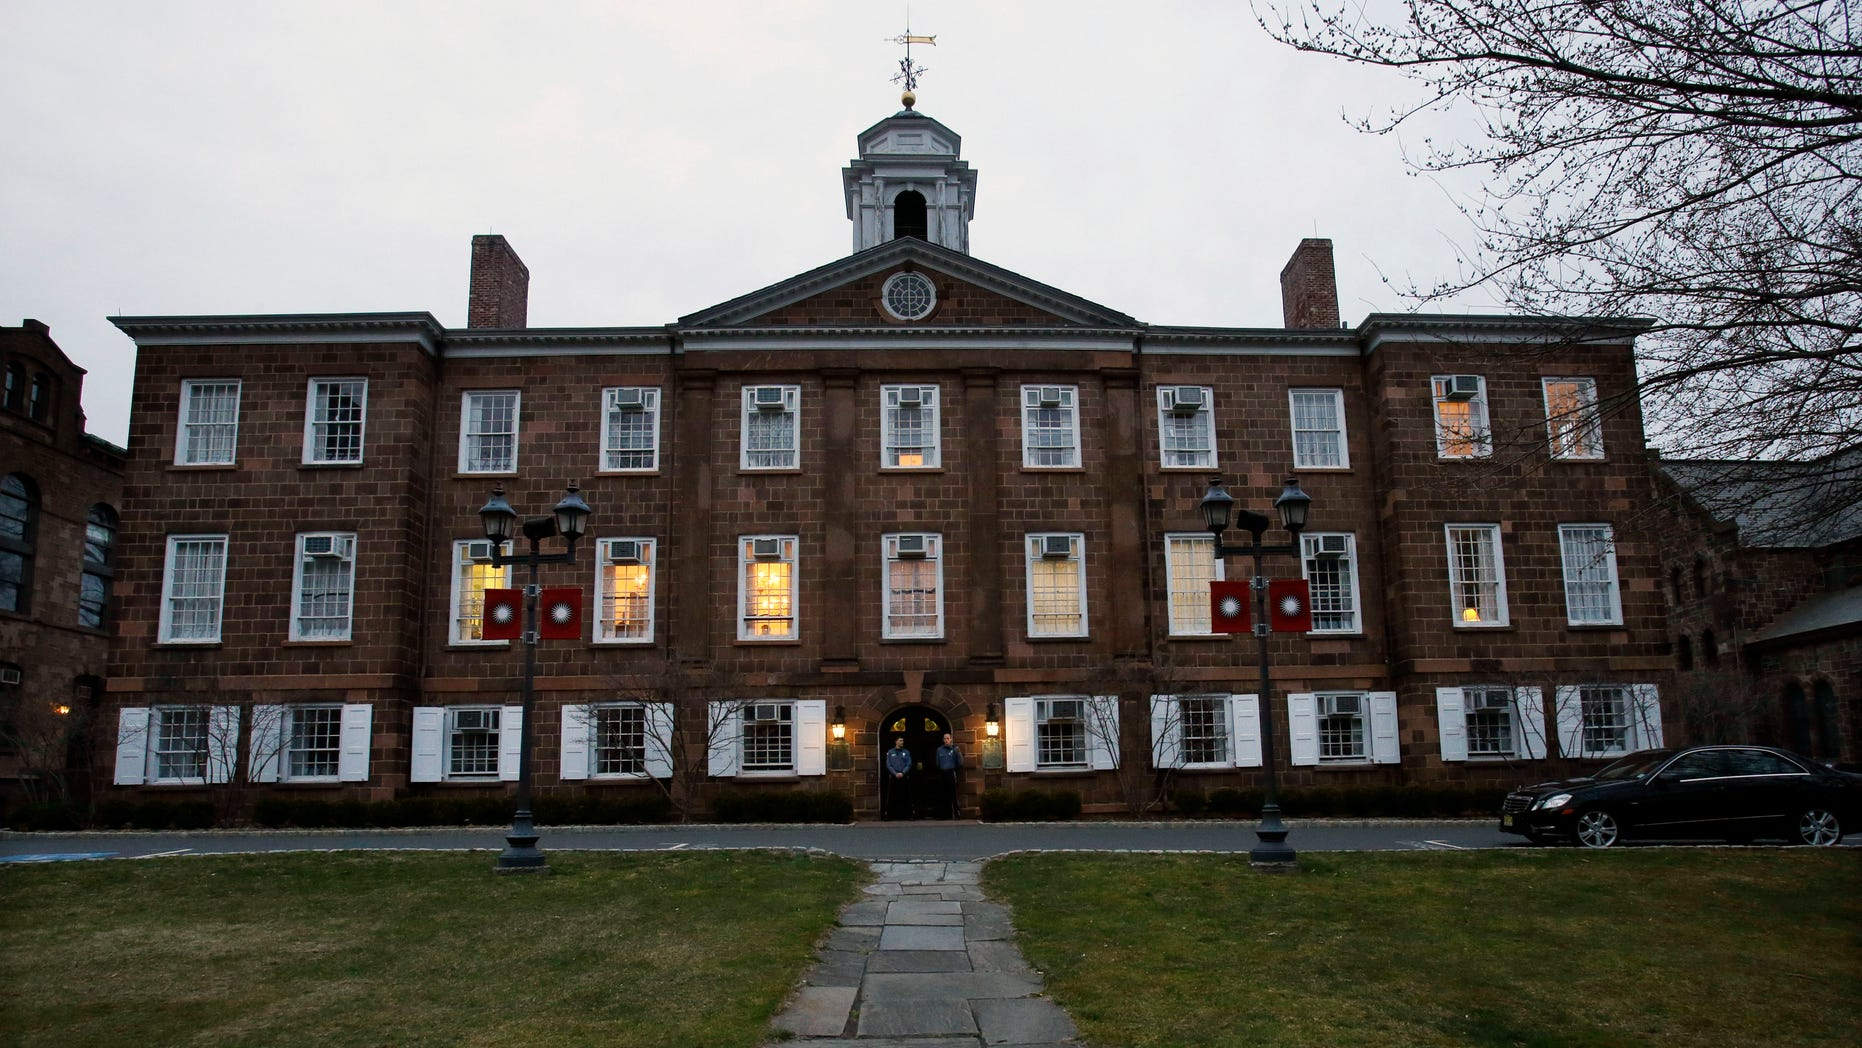 At dusk, lights remain on at Rutgers University's Old Queens building where  President Robert Barchi was in a meeting Thursday, April 4, 2013, in New Brunswick, N.J., one day after Rutgers basketball head coach Mike Rice was fired. Rice was fired Wednesday after a videotape aired showing Rice using gay slurs, shoving and grabbing his players and throwing balls at them in practice. Scarlet Knights AD Tim Pernetti was given a copy of the video in late November by a disgruntled former employee, and he suspended Rice for three games, fined him $50,000 and made him undergo anger management classes for inappropriate behavior after investigating it. (AP Photo/Mel Evans)